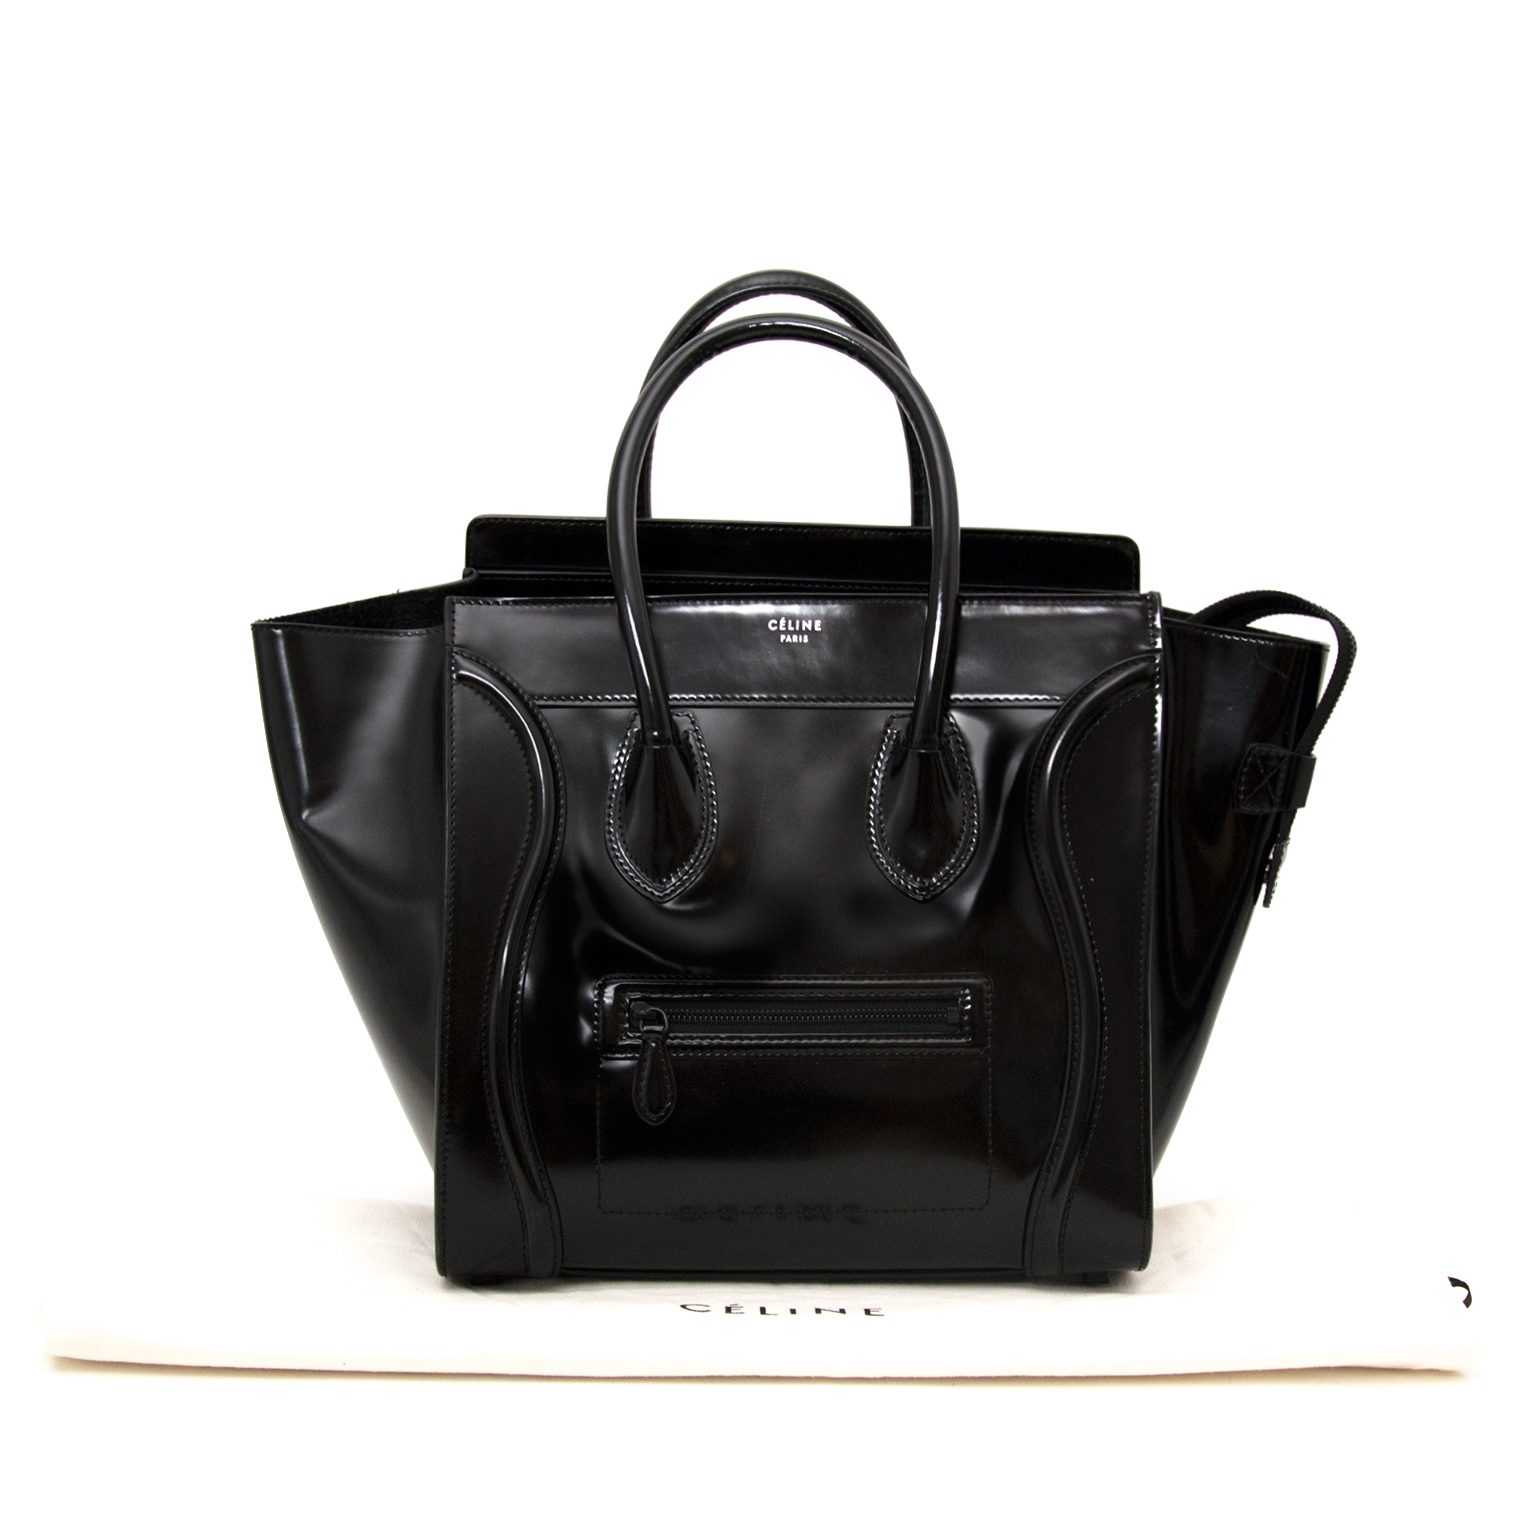 shop your luxury bag at the best price onmine webshop labellov.com